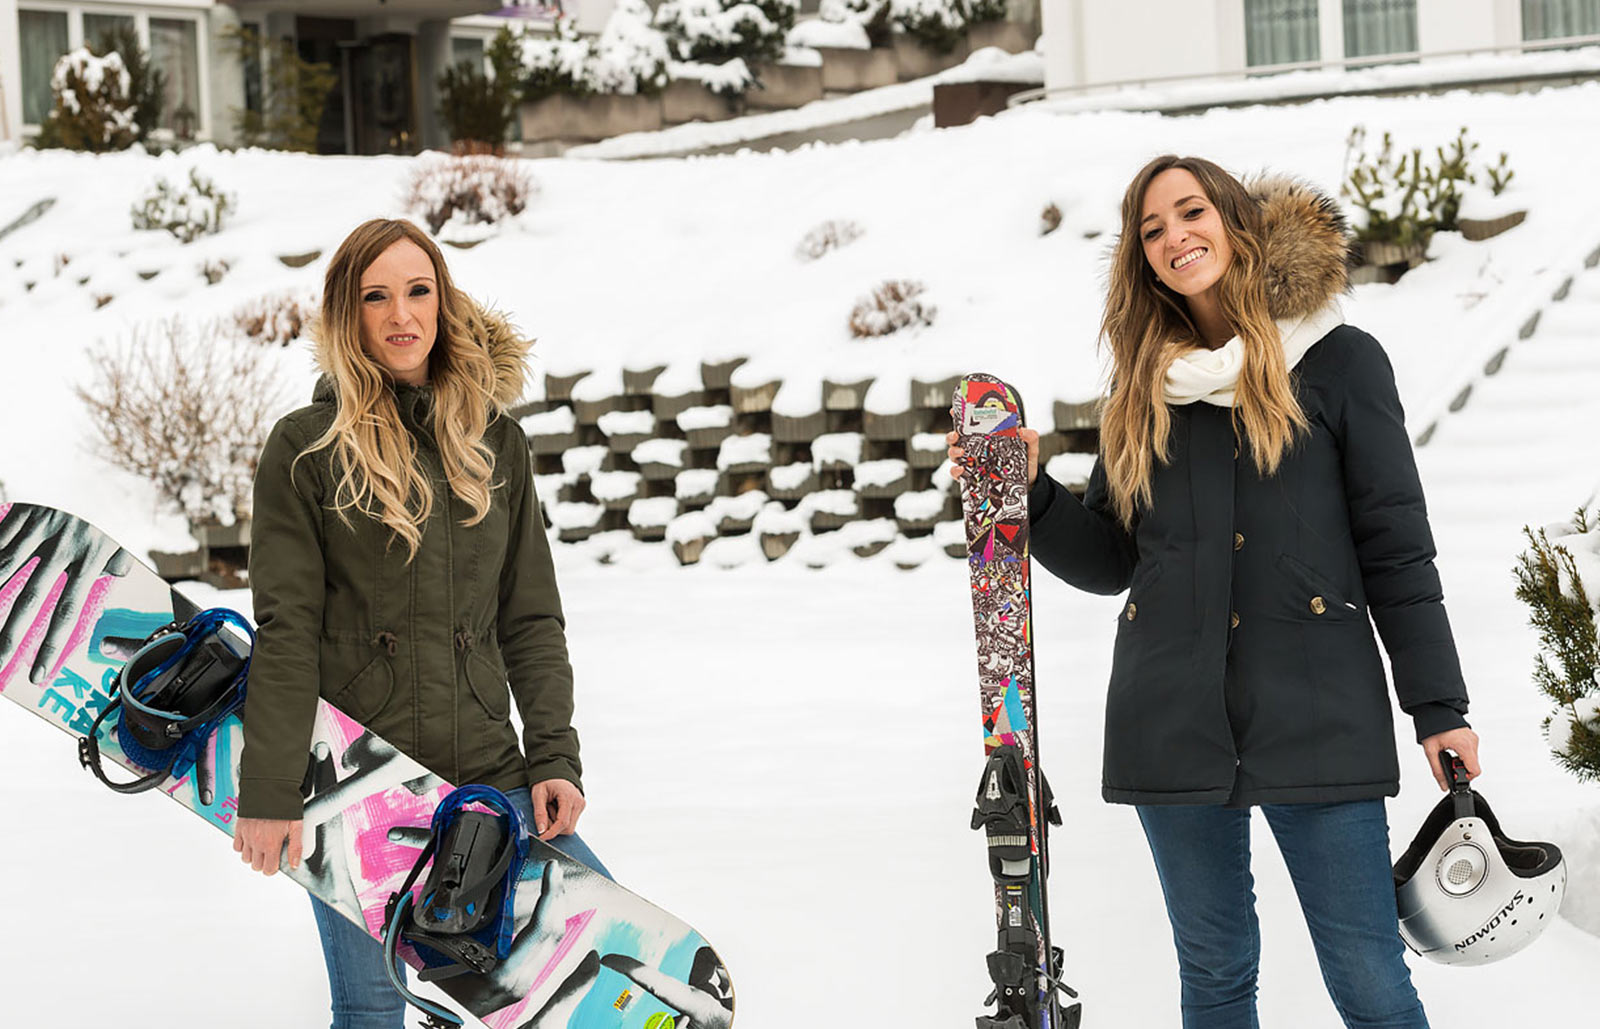 Two young ladies are happy to go ski in the Dolomites on the Speikboden with the rented equipment